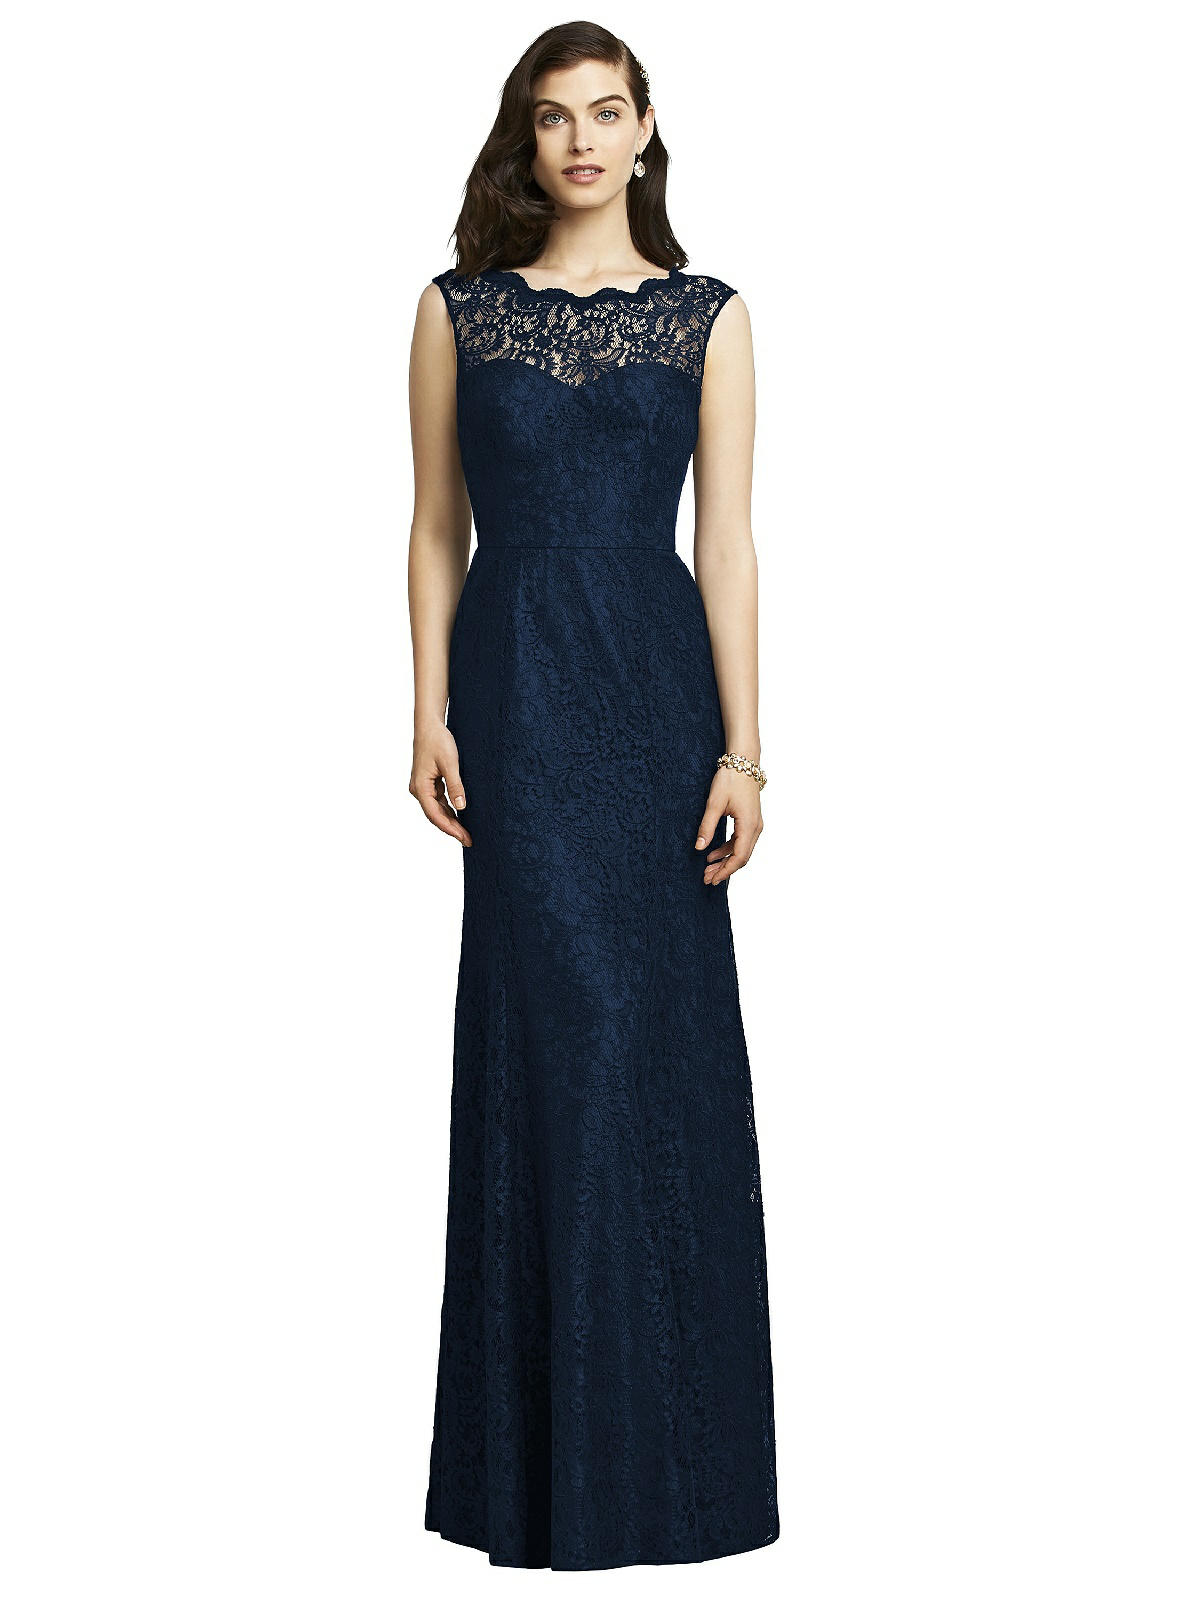 Dessy Collection Bridesmaid Dress 2940 | The Dessy Group